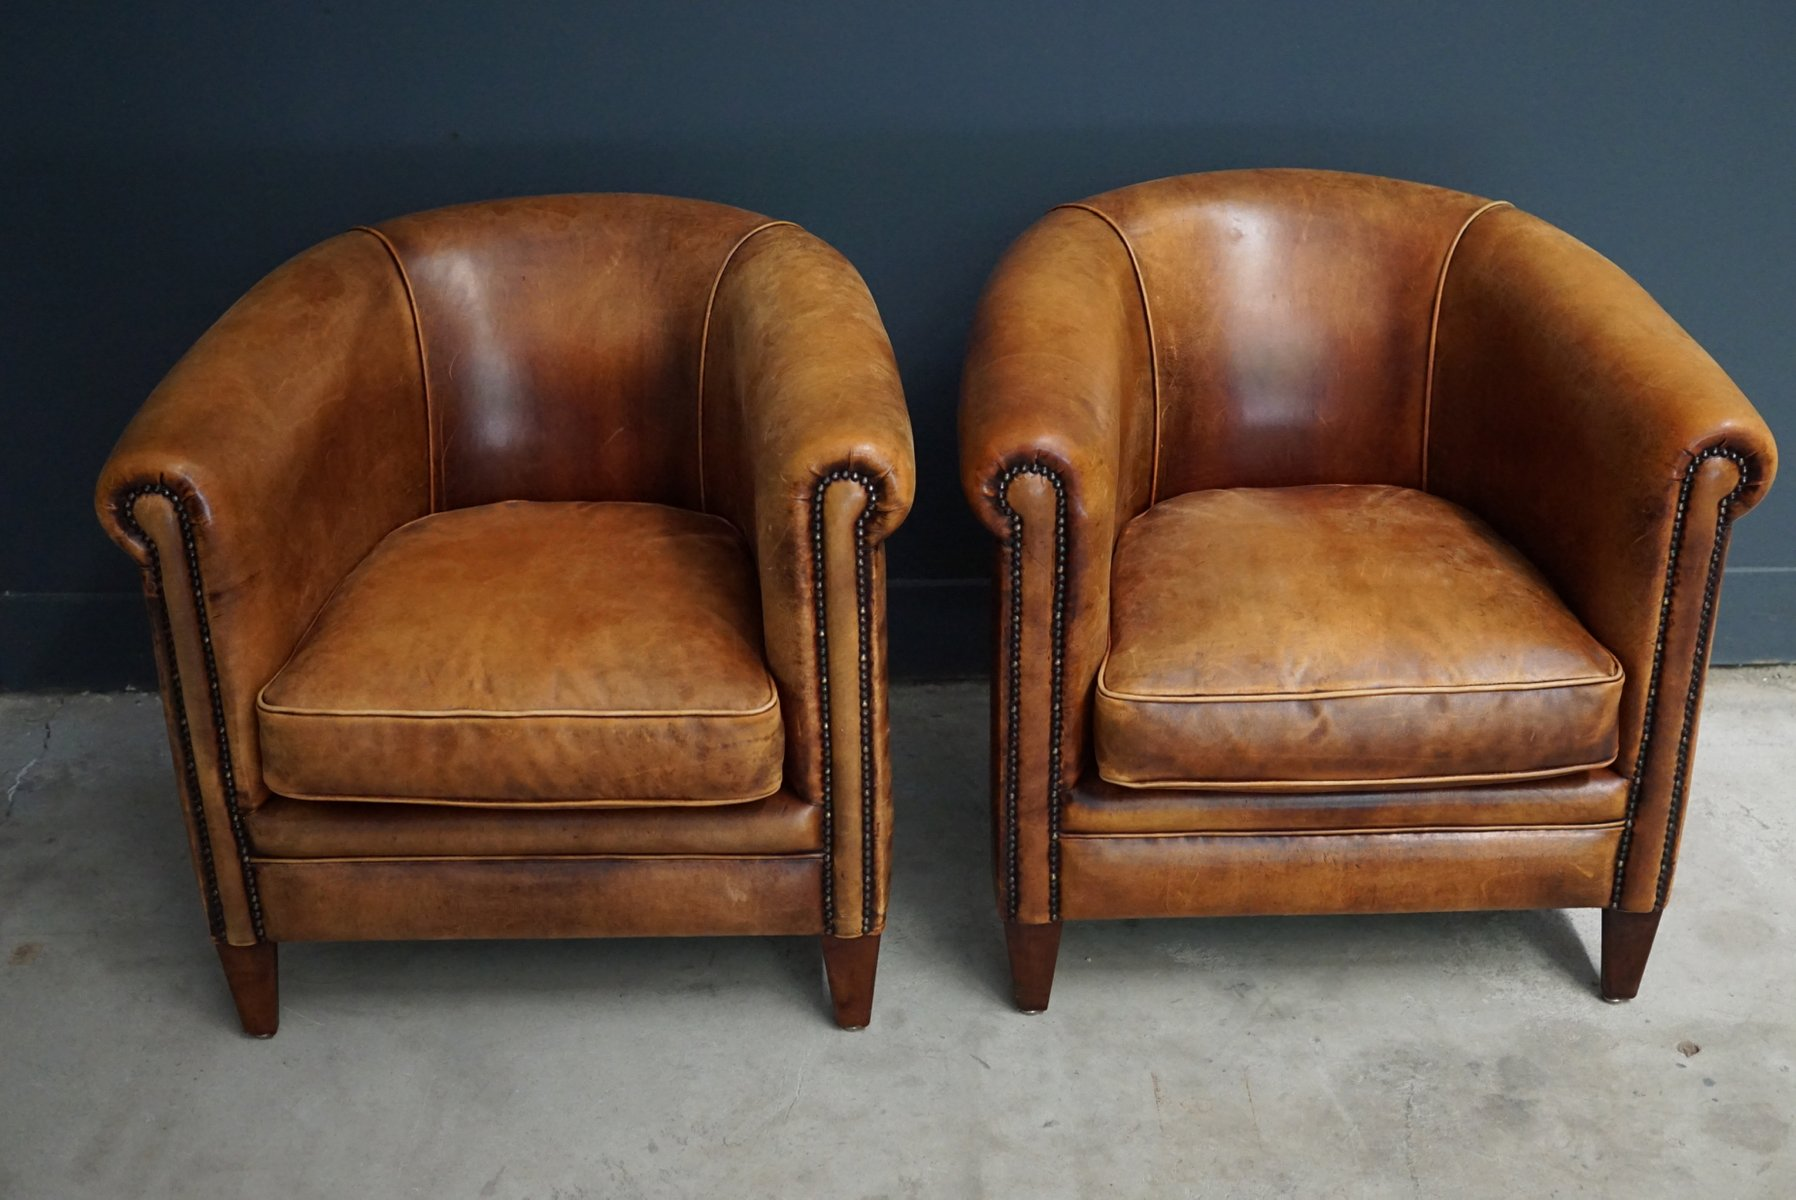 Vintage Cognac Leather Club Chairs Set of 2 for sale at Pamono